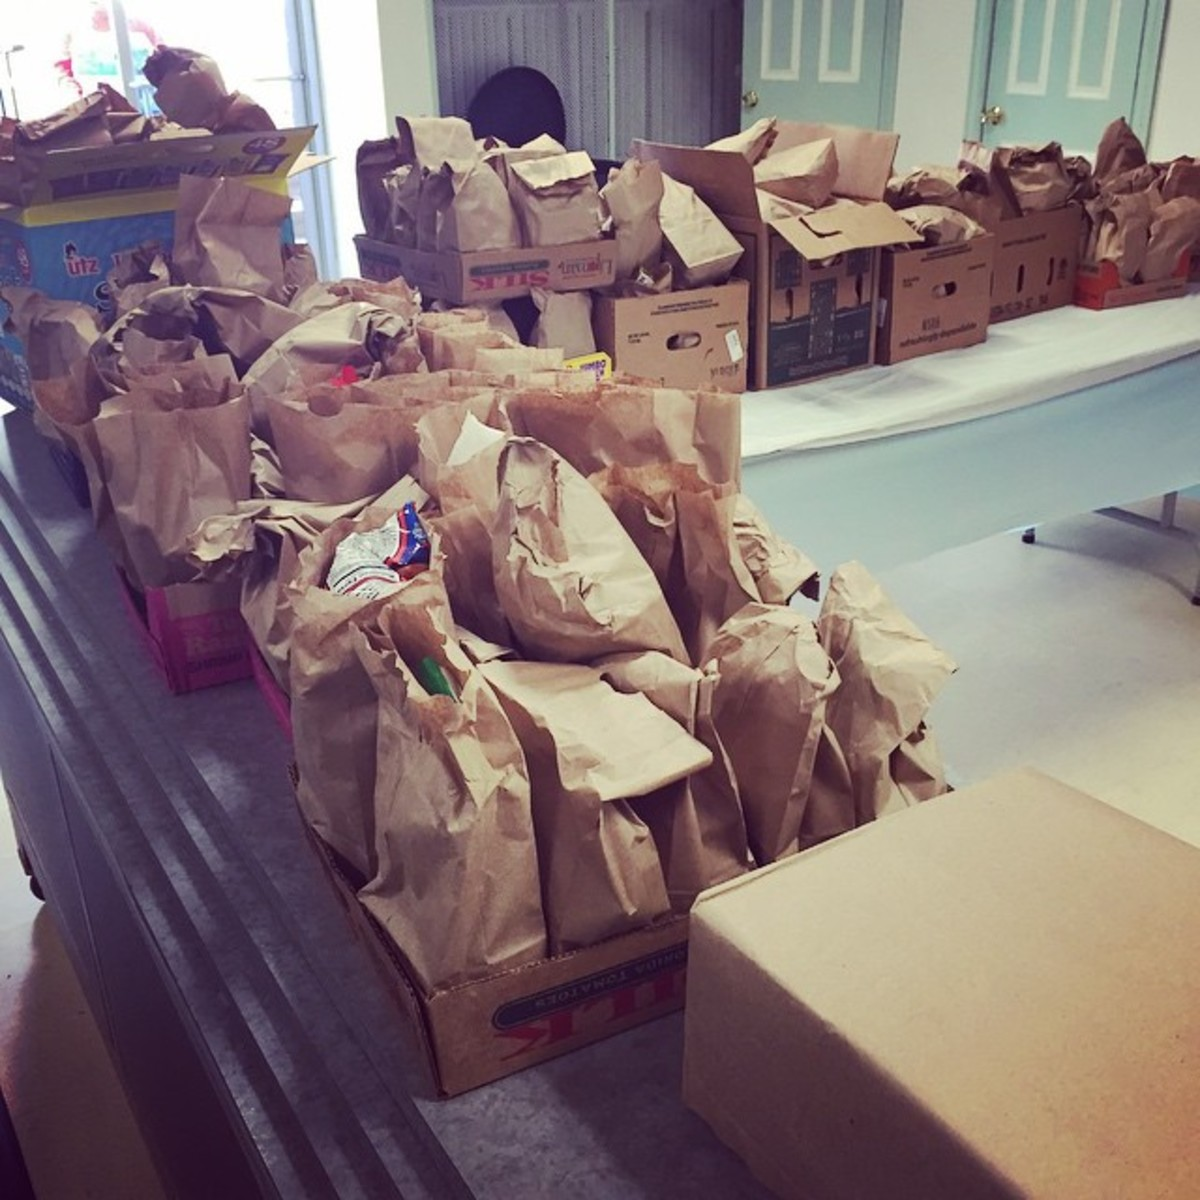 Bagged lunches ready for distribution in Baltimore. (Photo: vinny_ftw/Instagram)